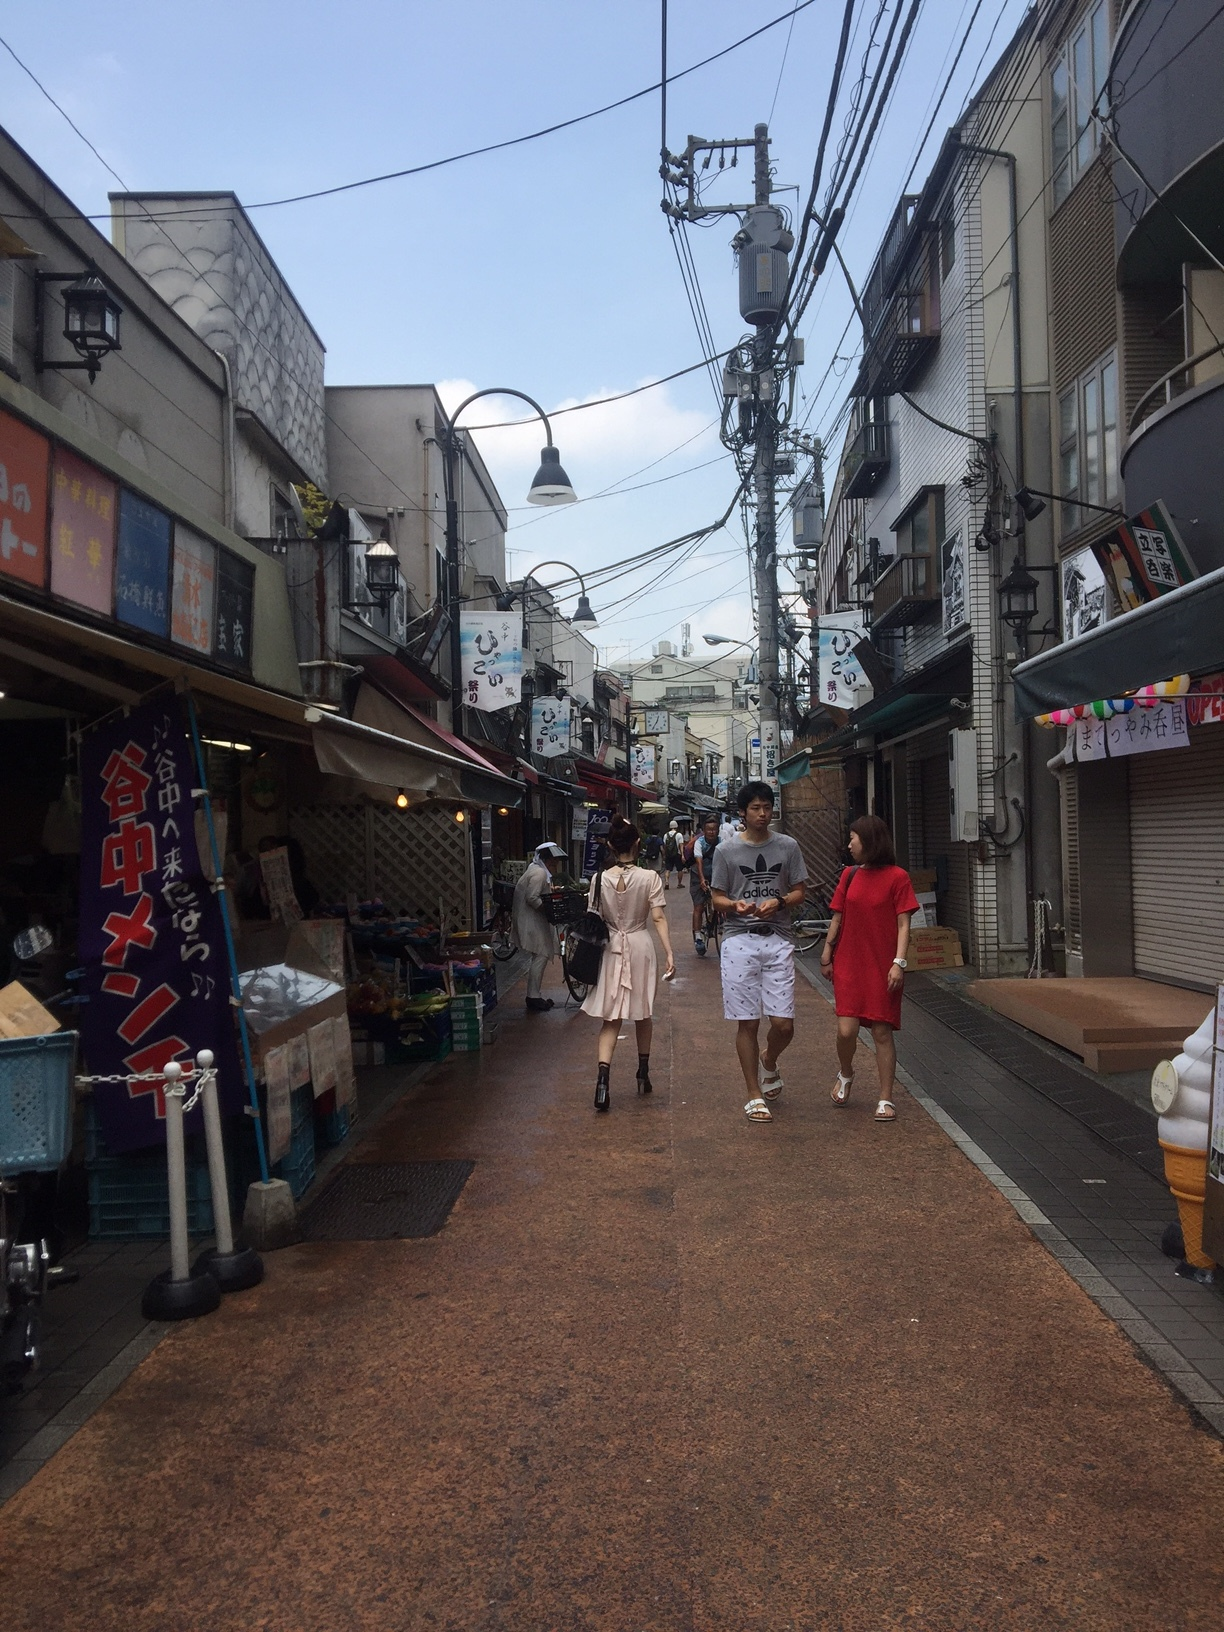 Exploring the streets of Yanaka in Japan, July 2017